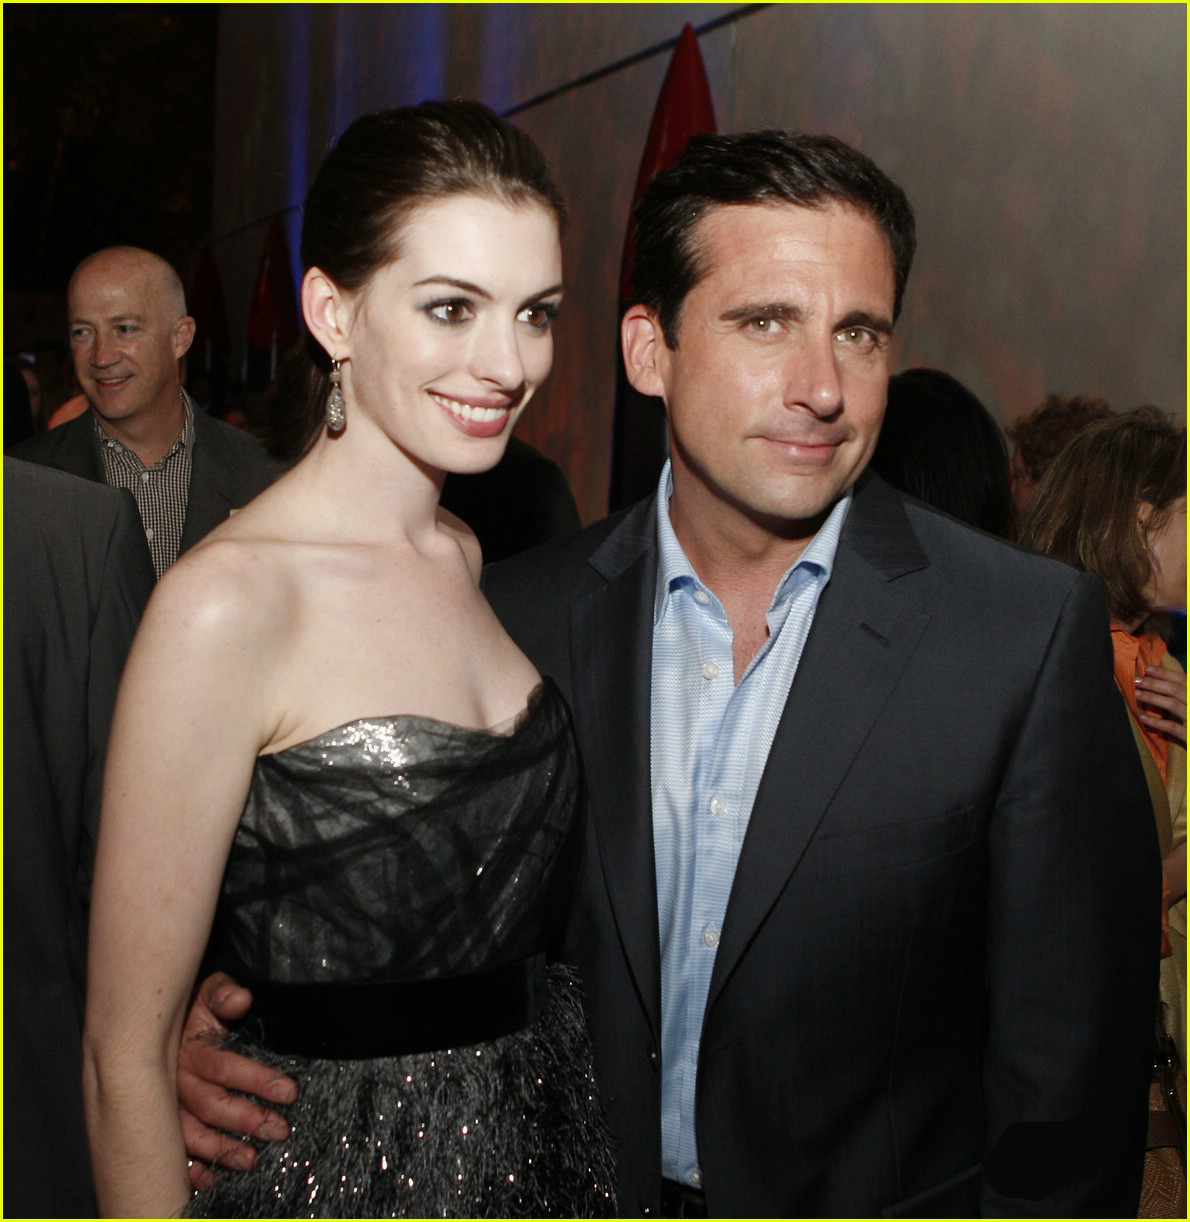 Anne Hathaway Boyfriend: Anne Hathaway With Boyfriend Raffaello Follieri Photo